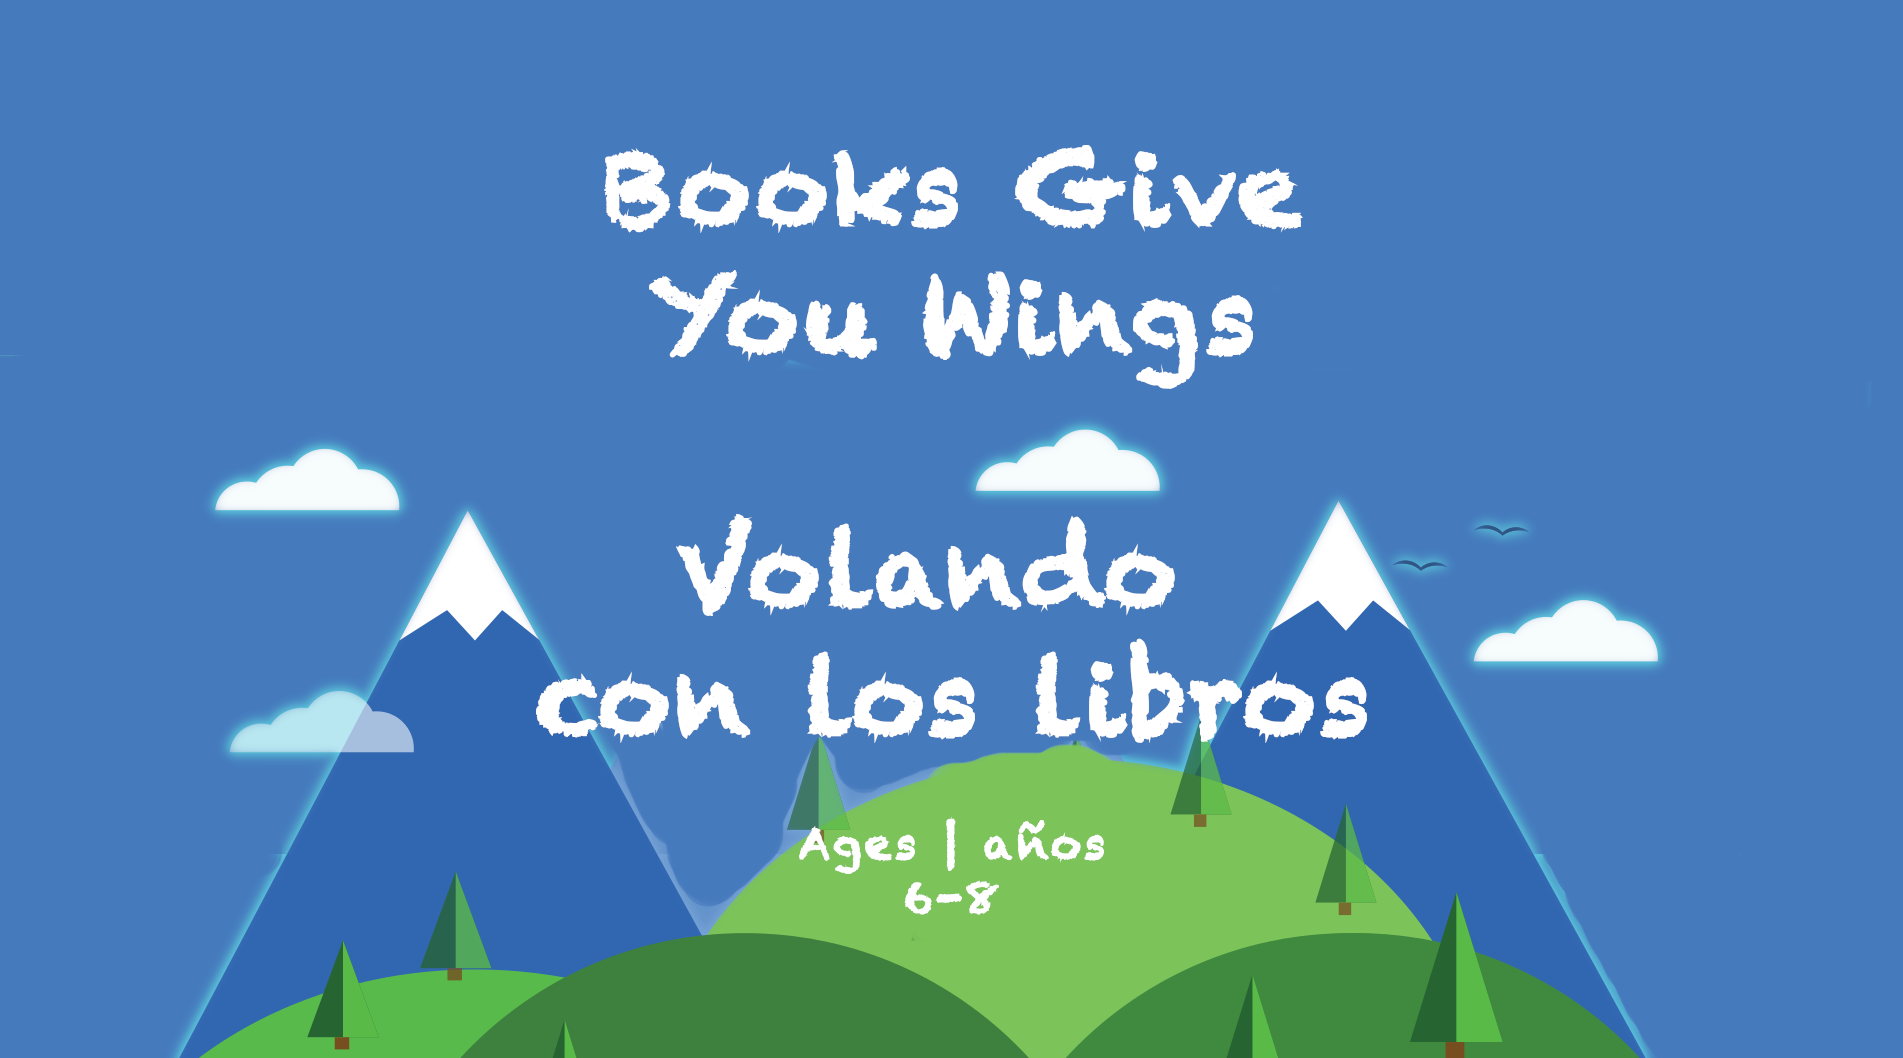 Books Give You Wings